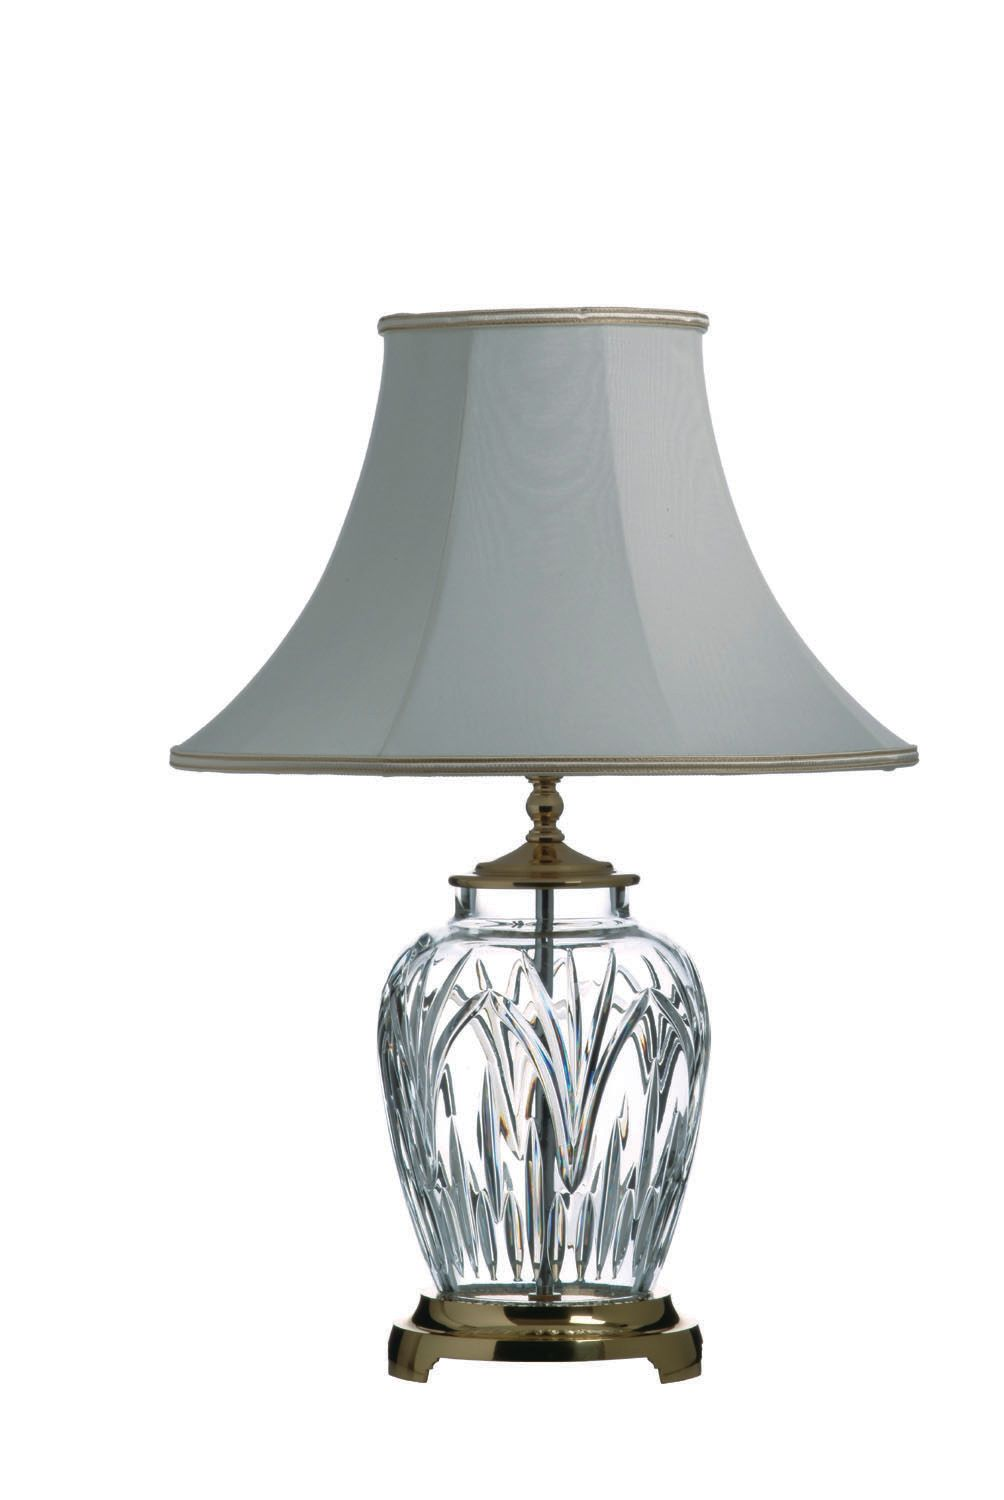 Waterford Ballylee Accent Table Lamp Review Compare